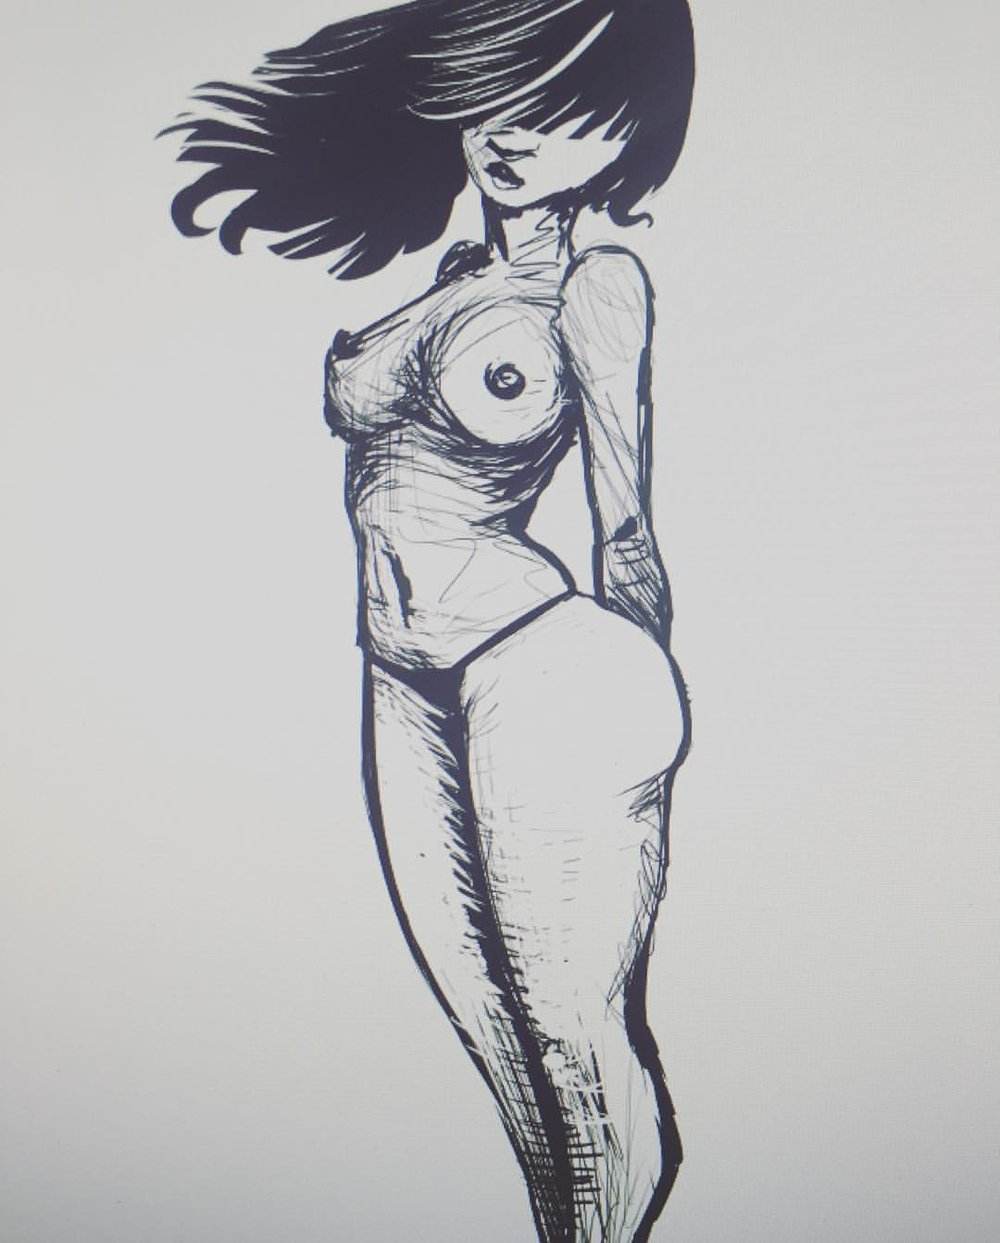 Sketch #digitalpainting #pinupart #girl #sketch #sketchbook #digitalink